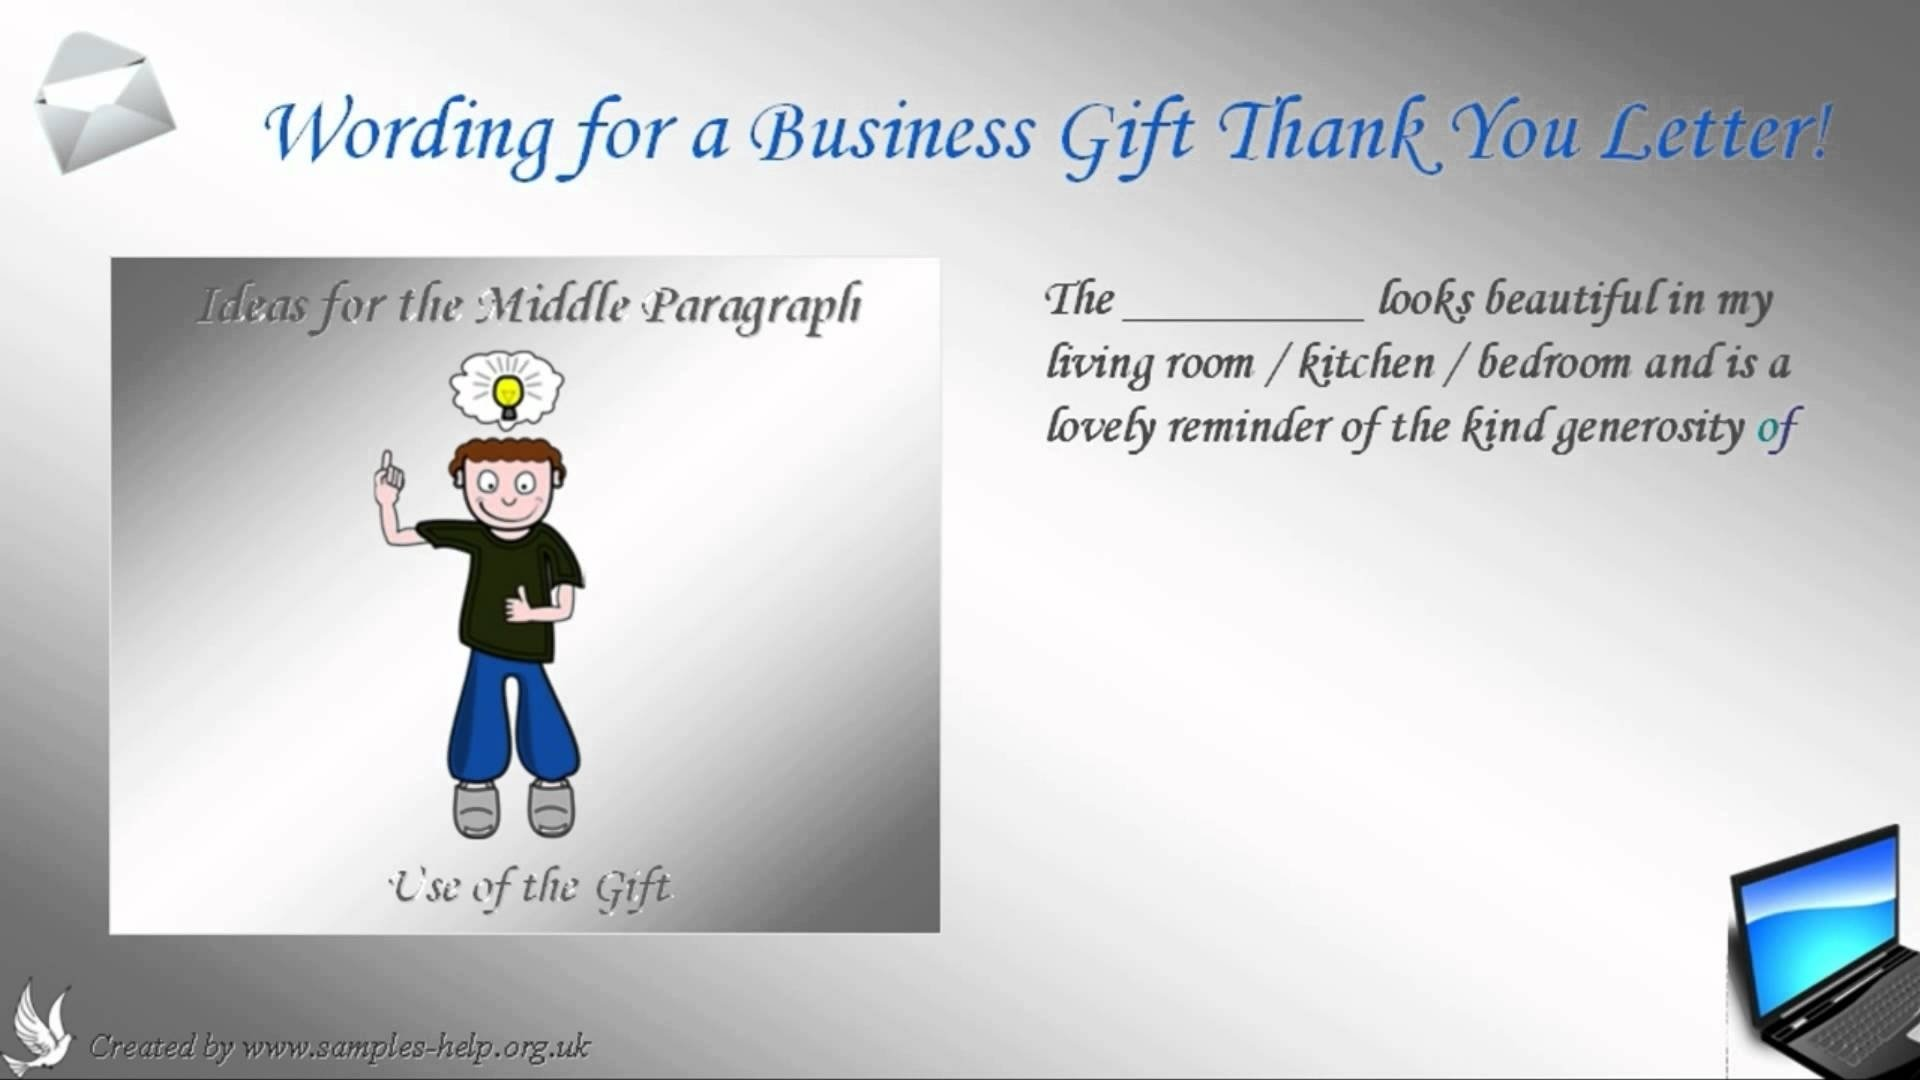 10 Wonderful Business Thank You Gift Ideas how to write a business gift thank you letter youtube 2020